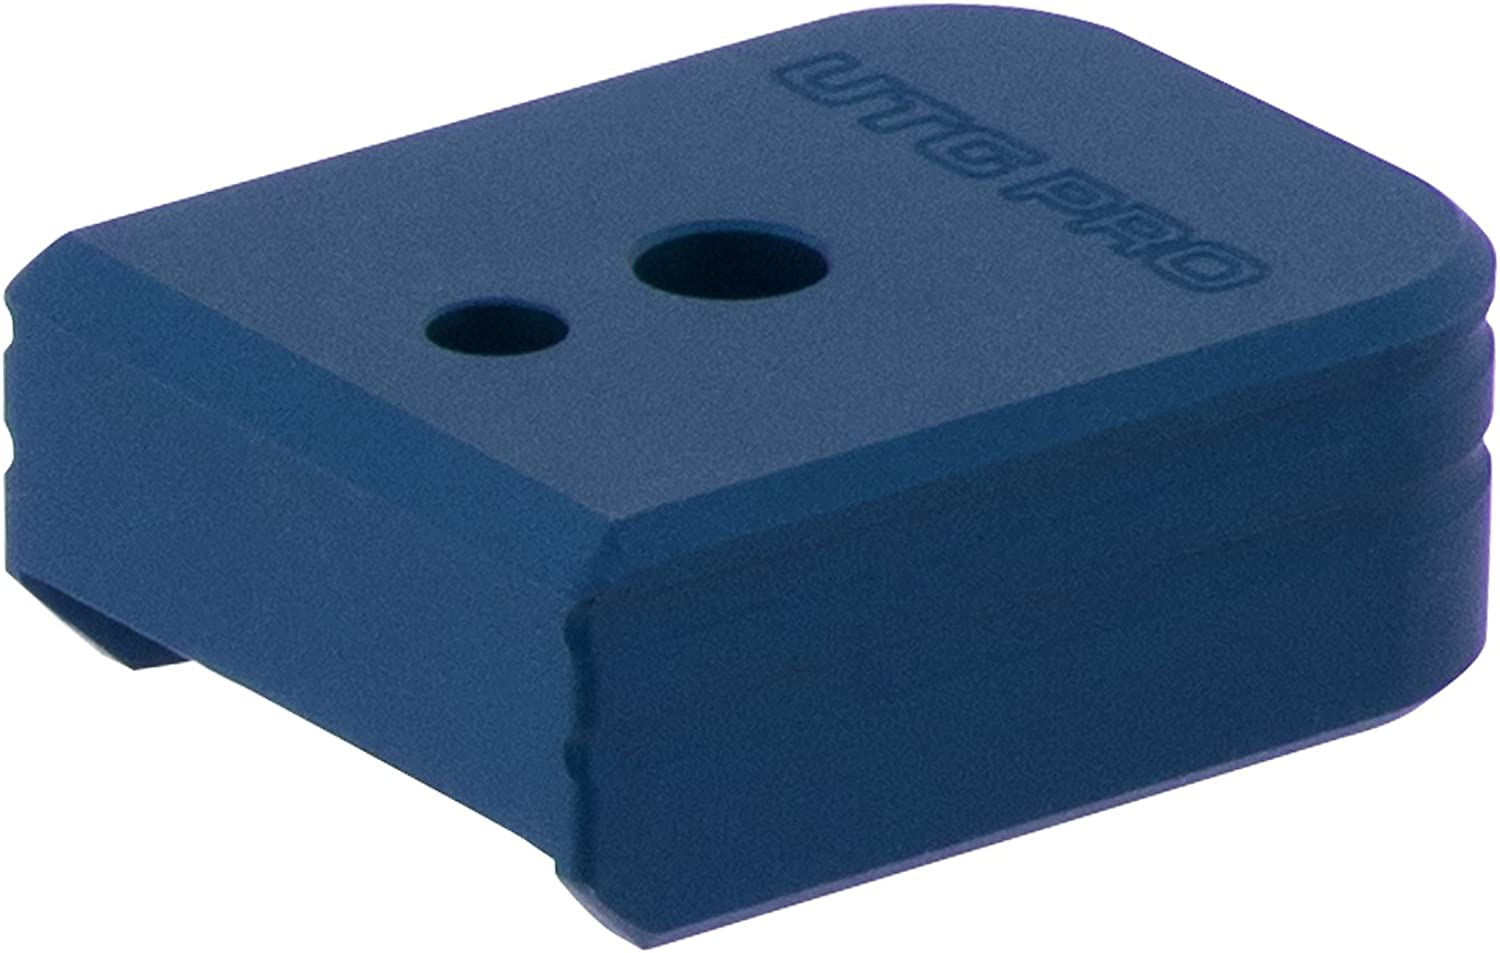 UTG PRO Plus 0 Base Pad, S&W M&P 9 40, Matte bluee Aluminum